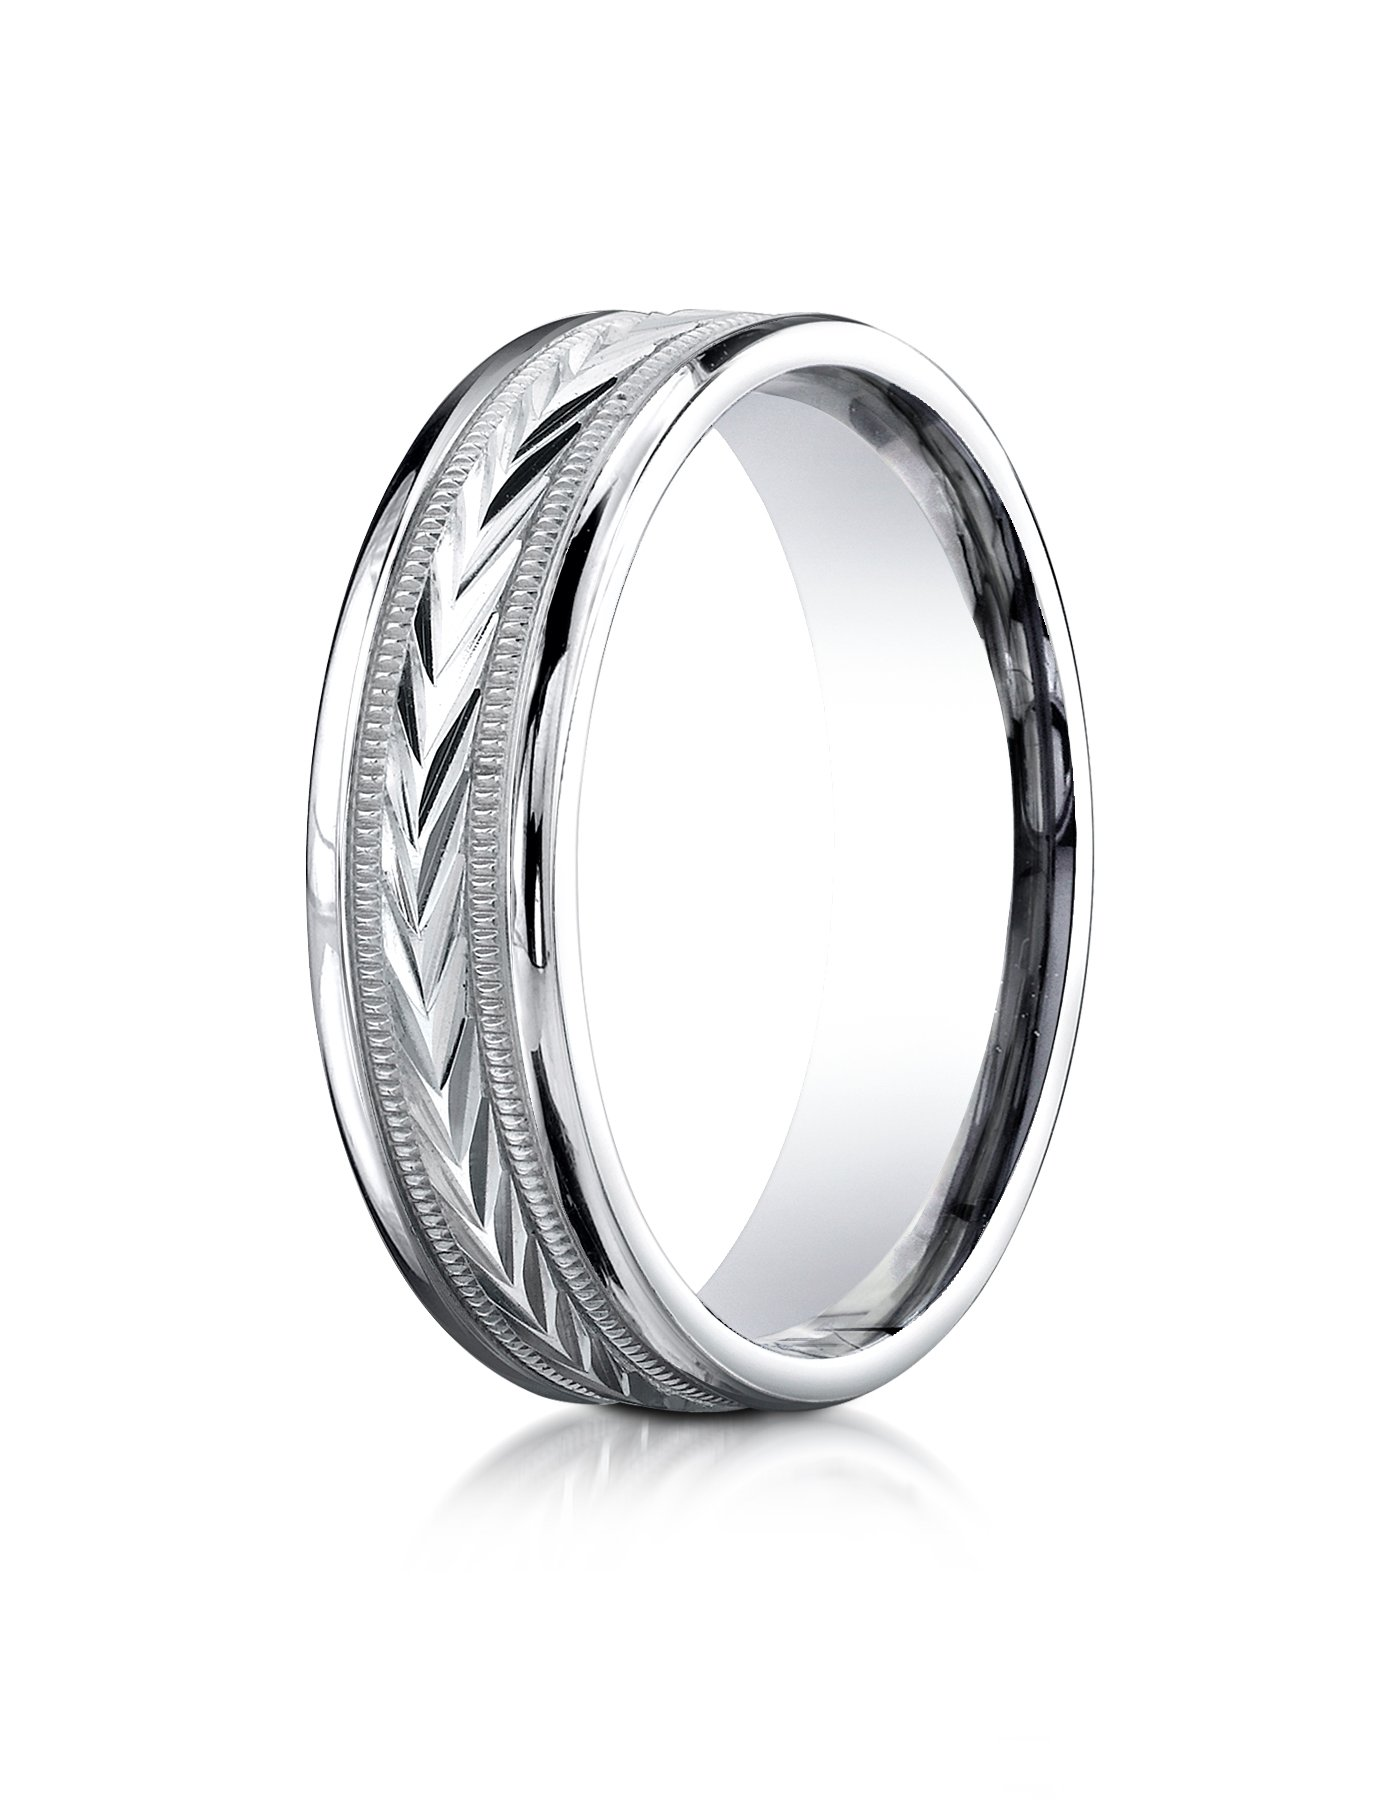 14k White Gold 6mm Comfort-Fit Harvest of Love Round Edge Carved Design Wedding Band Ring for Men & Women Size 4 to 15